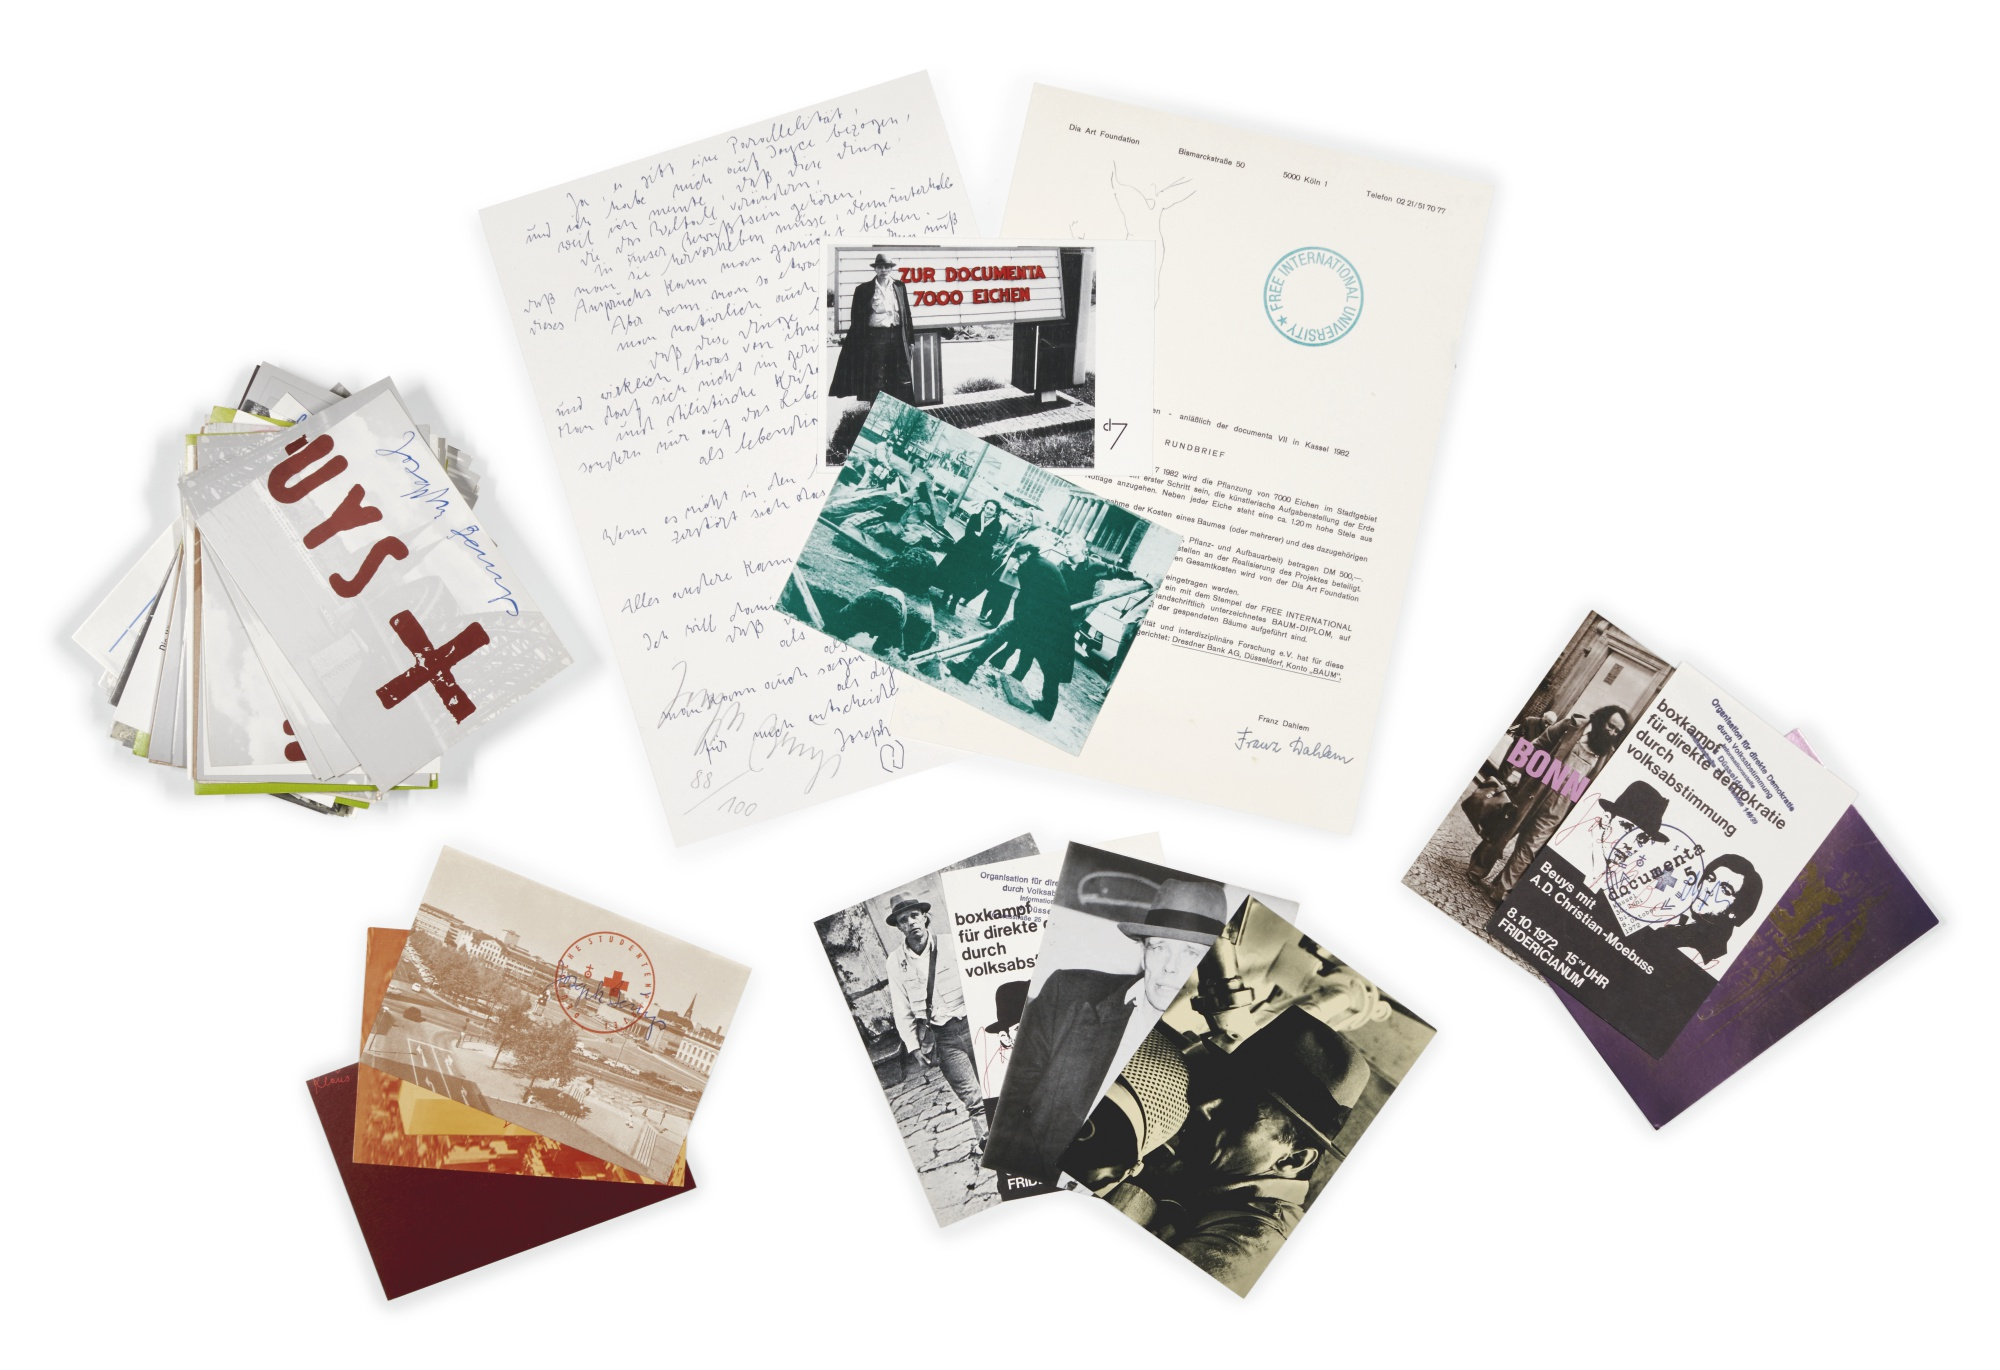 Joseph Beuys-A Collection Of Letters And Postcards: James Joyce (S. 511); Beuys boxt für direkte Demokratie (S. 58); Neue Anschrift (S. 69); Letter from London (S. 194); Fat Shine on Iron-1984